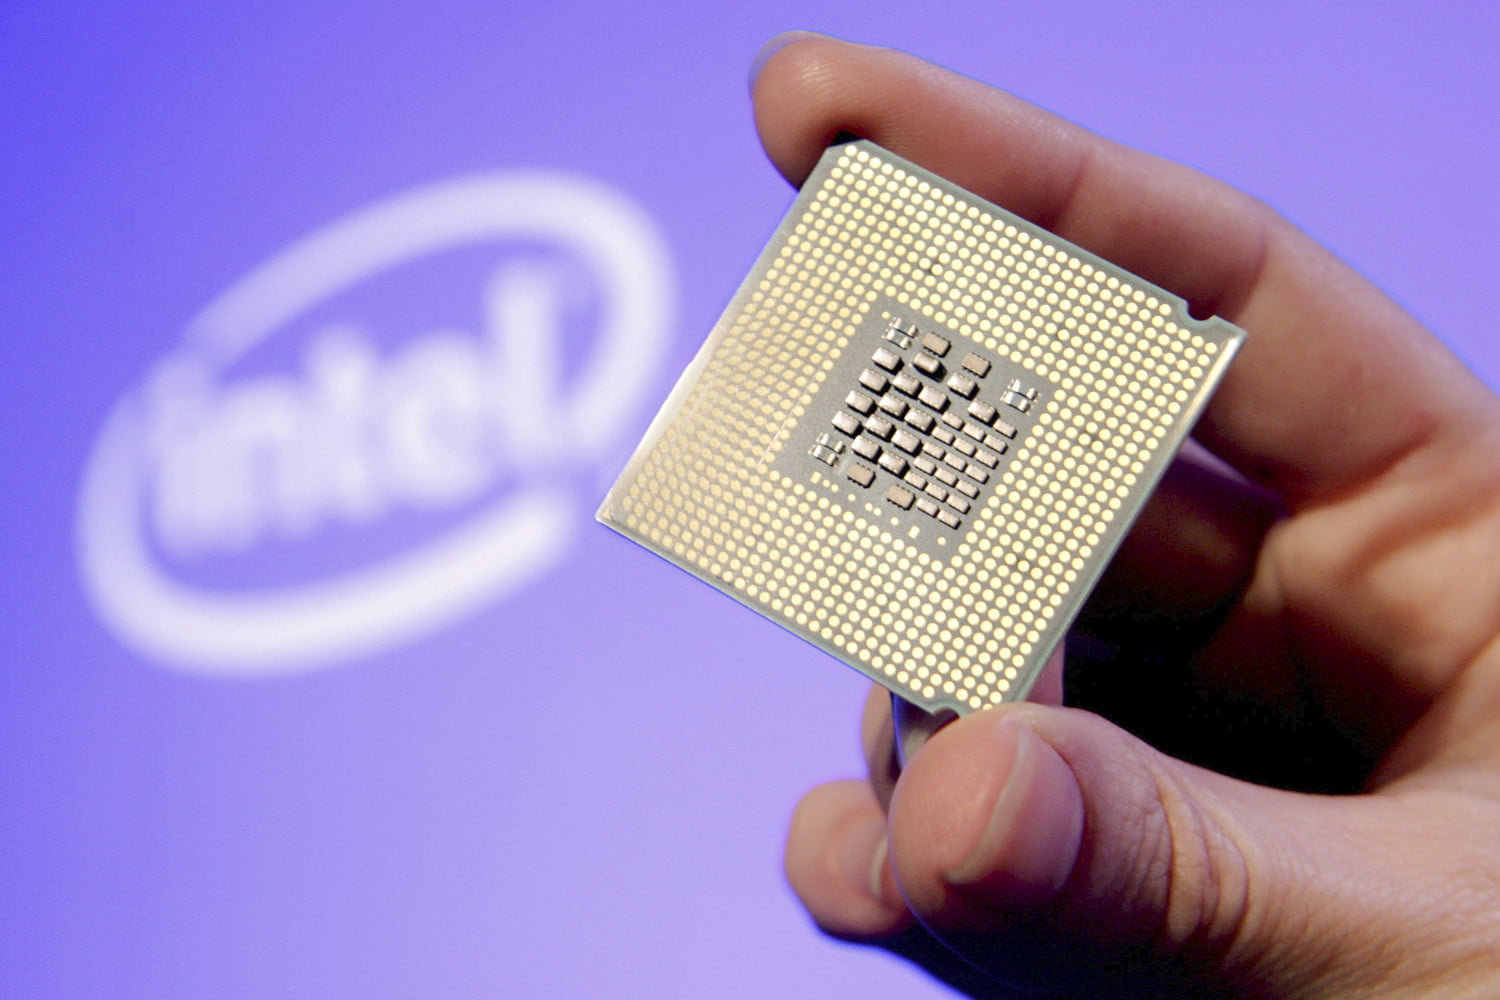 Intel answers Qualcomm's new PC processors by pairing Core and Atom in 'Foveros'